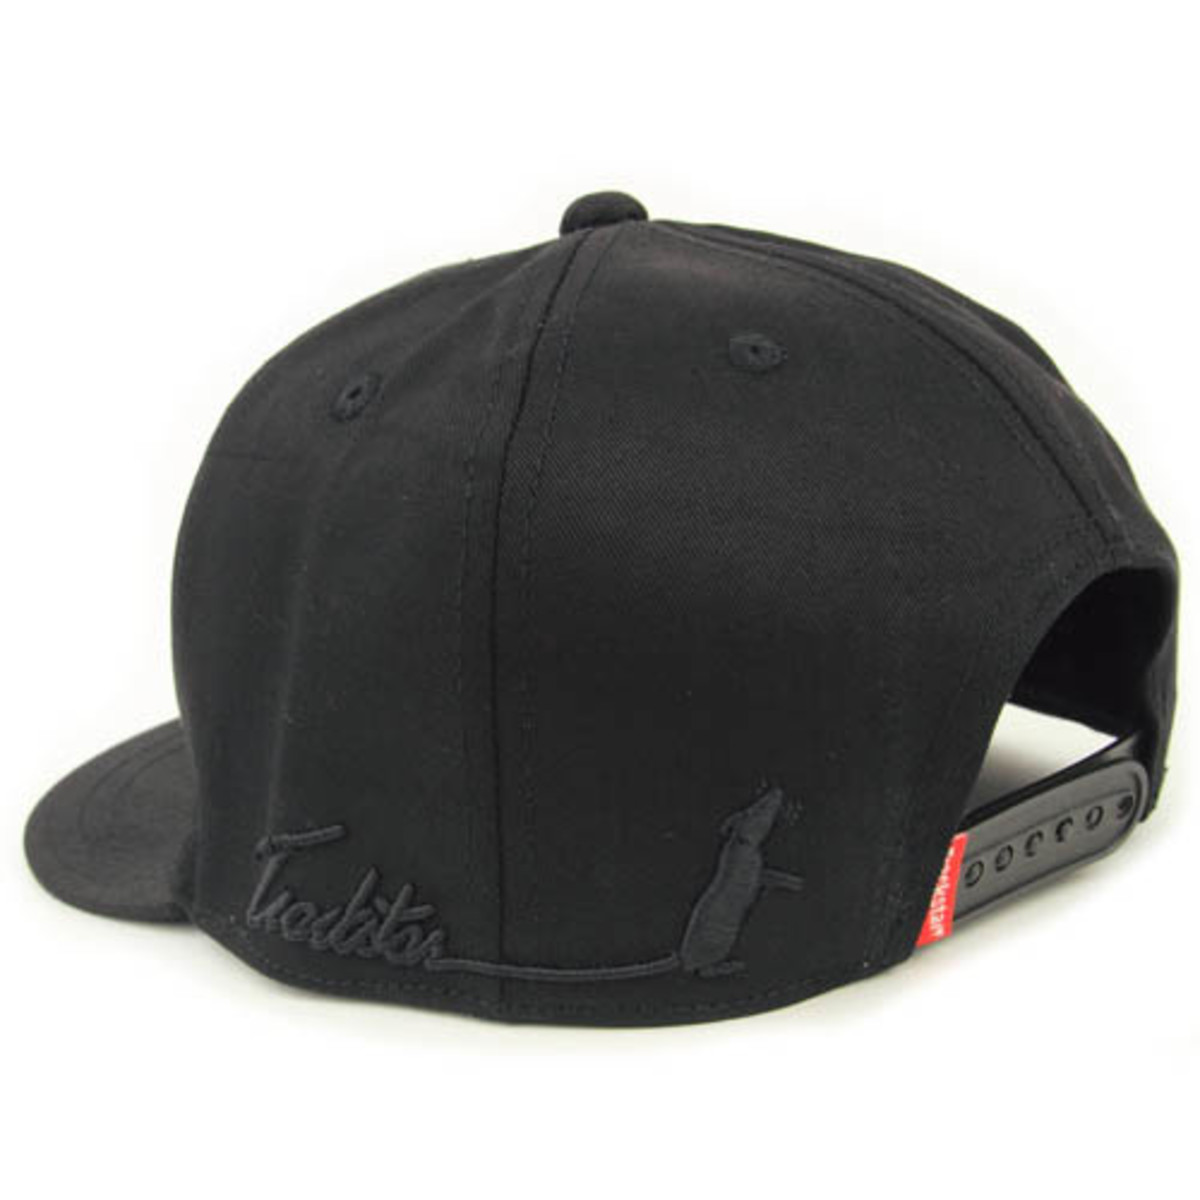 NYC Cap Black 2